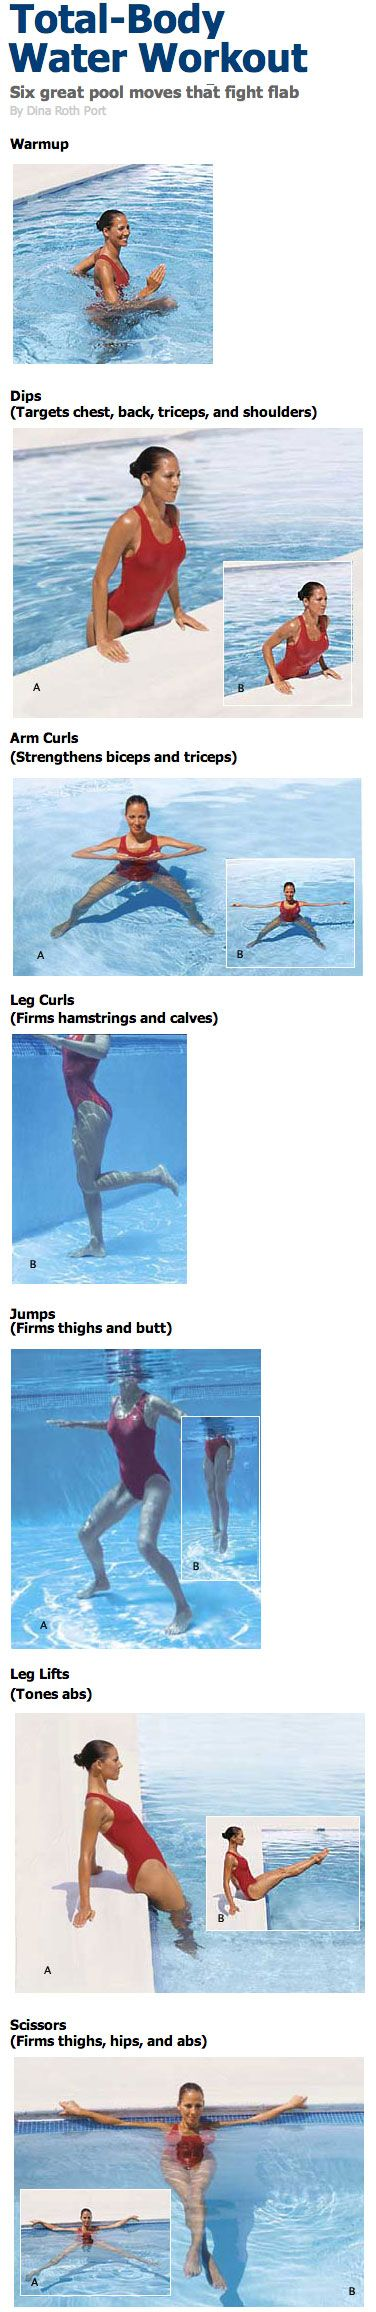 Full Body Workout For Beginners Video Collection Body Workouts Workout And Pool Exercises